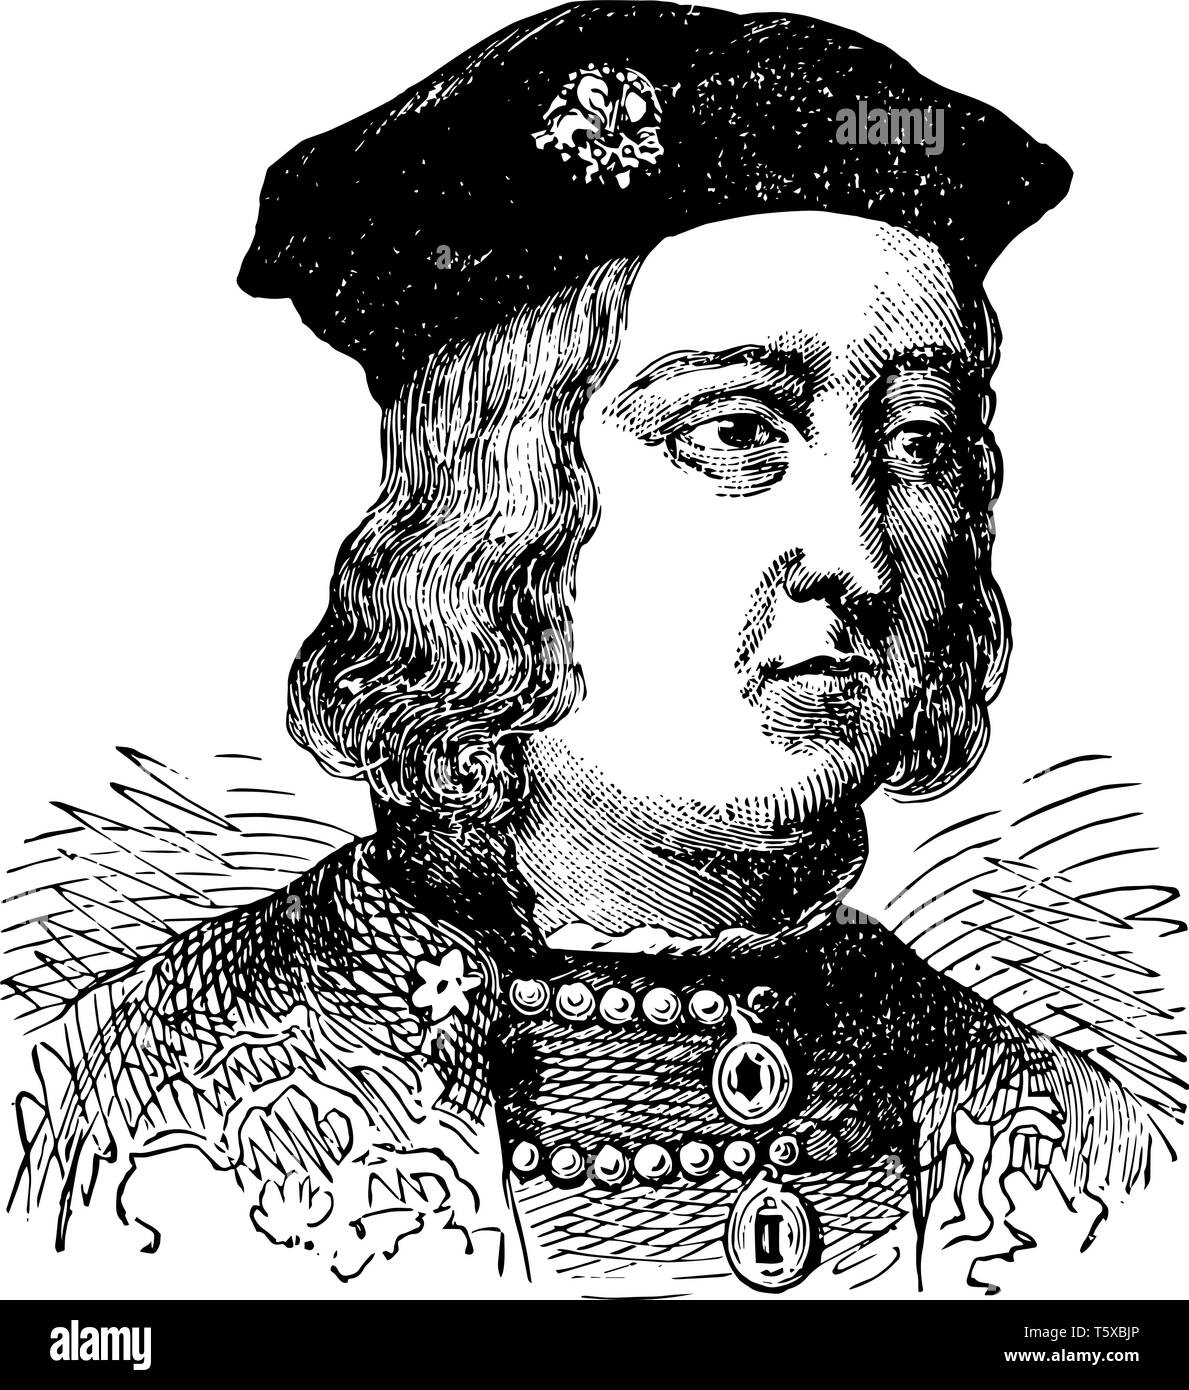 Richard IV of England, 1442-1483, he was the king of England from 1461 to 1470, vintage line drawing or engraving illustration - Stock Vector